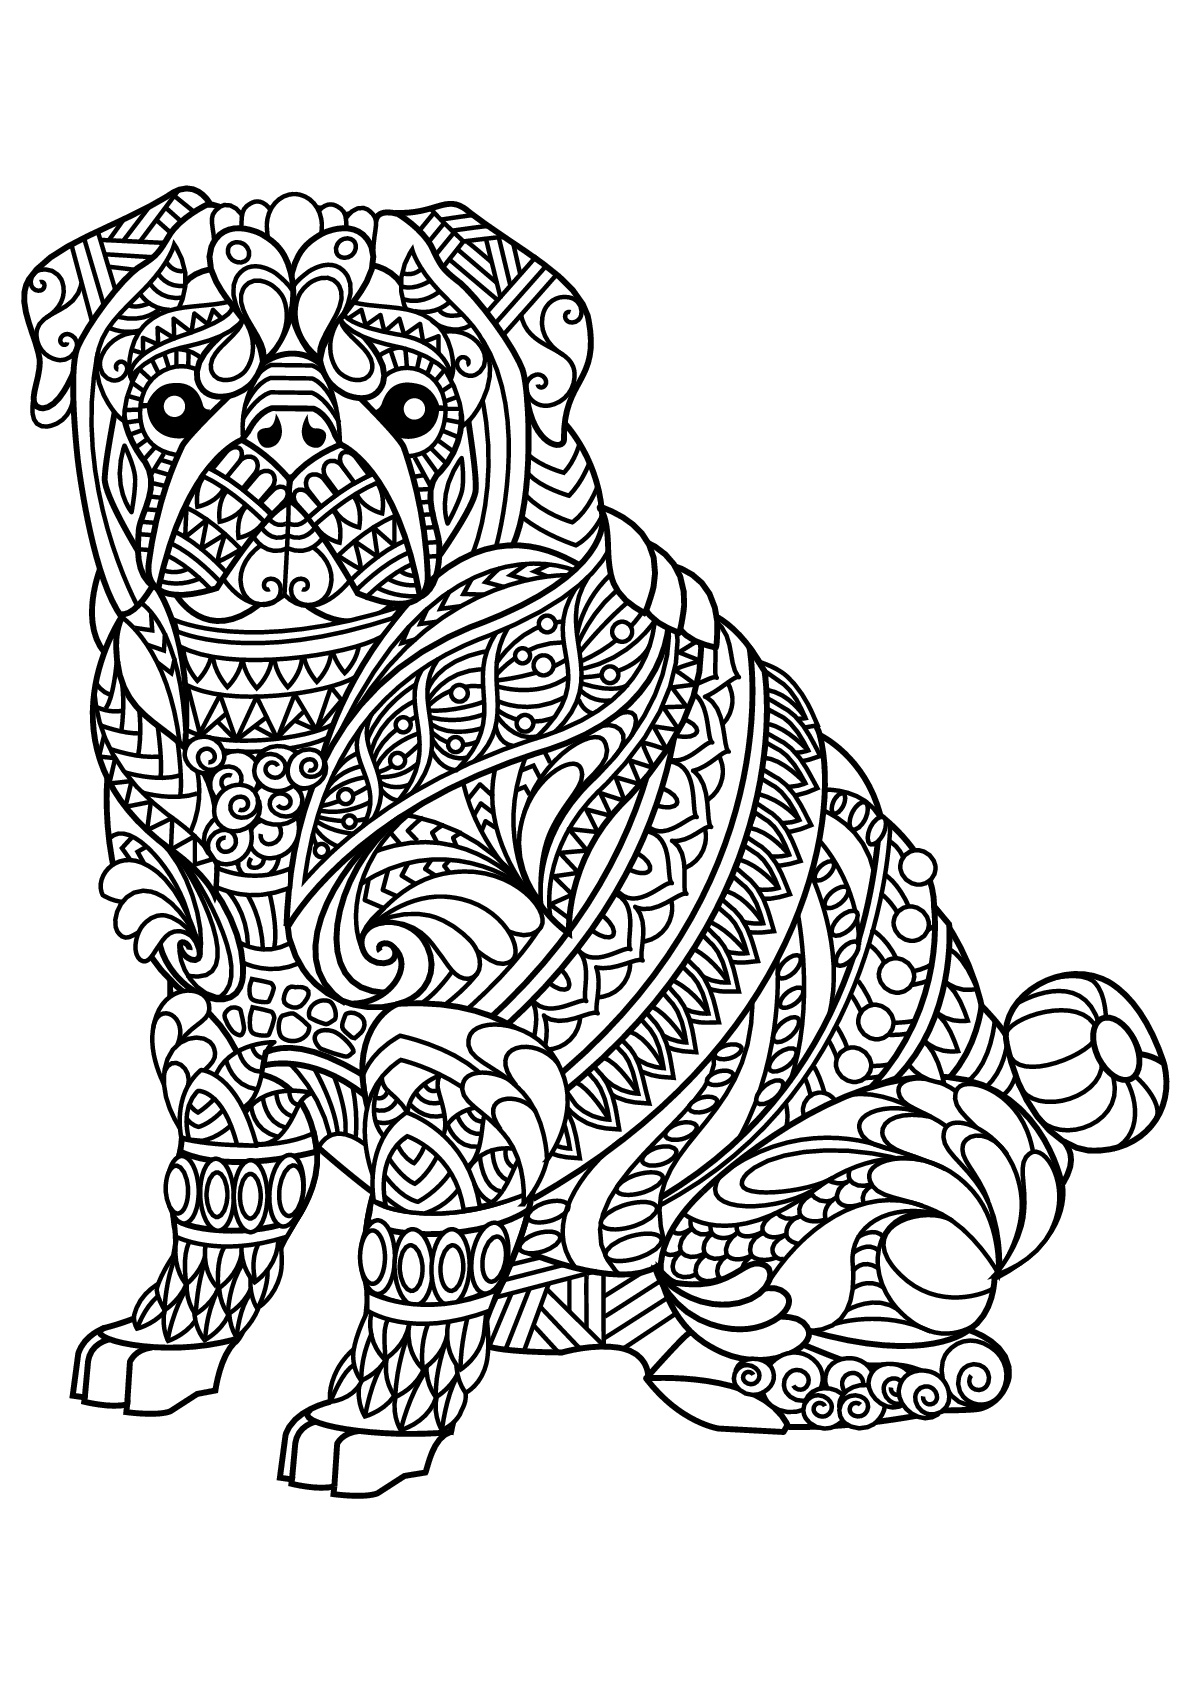 Free book dog bulldog Dogs Adult Coloring Pages